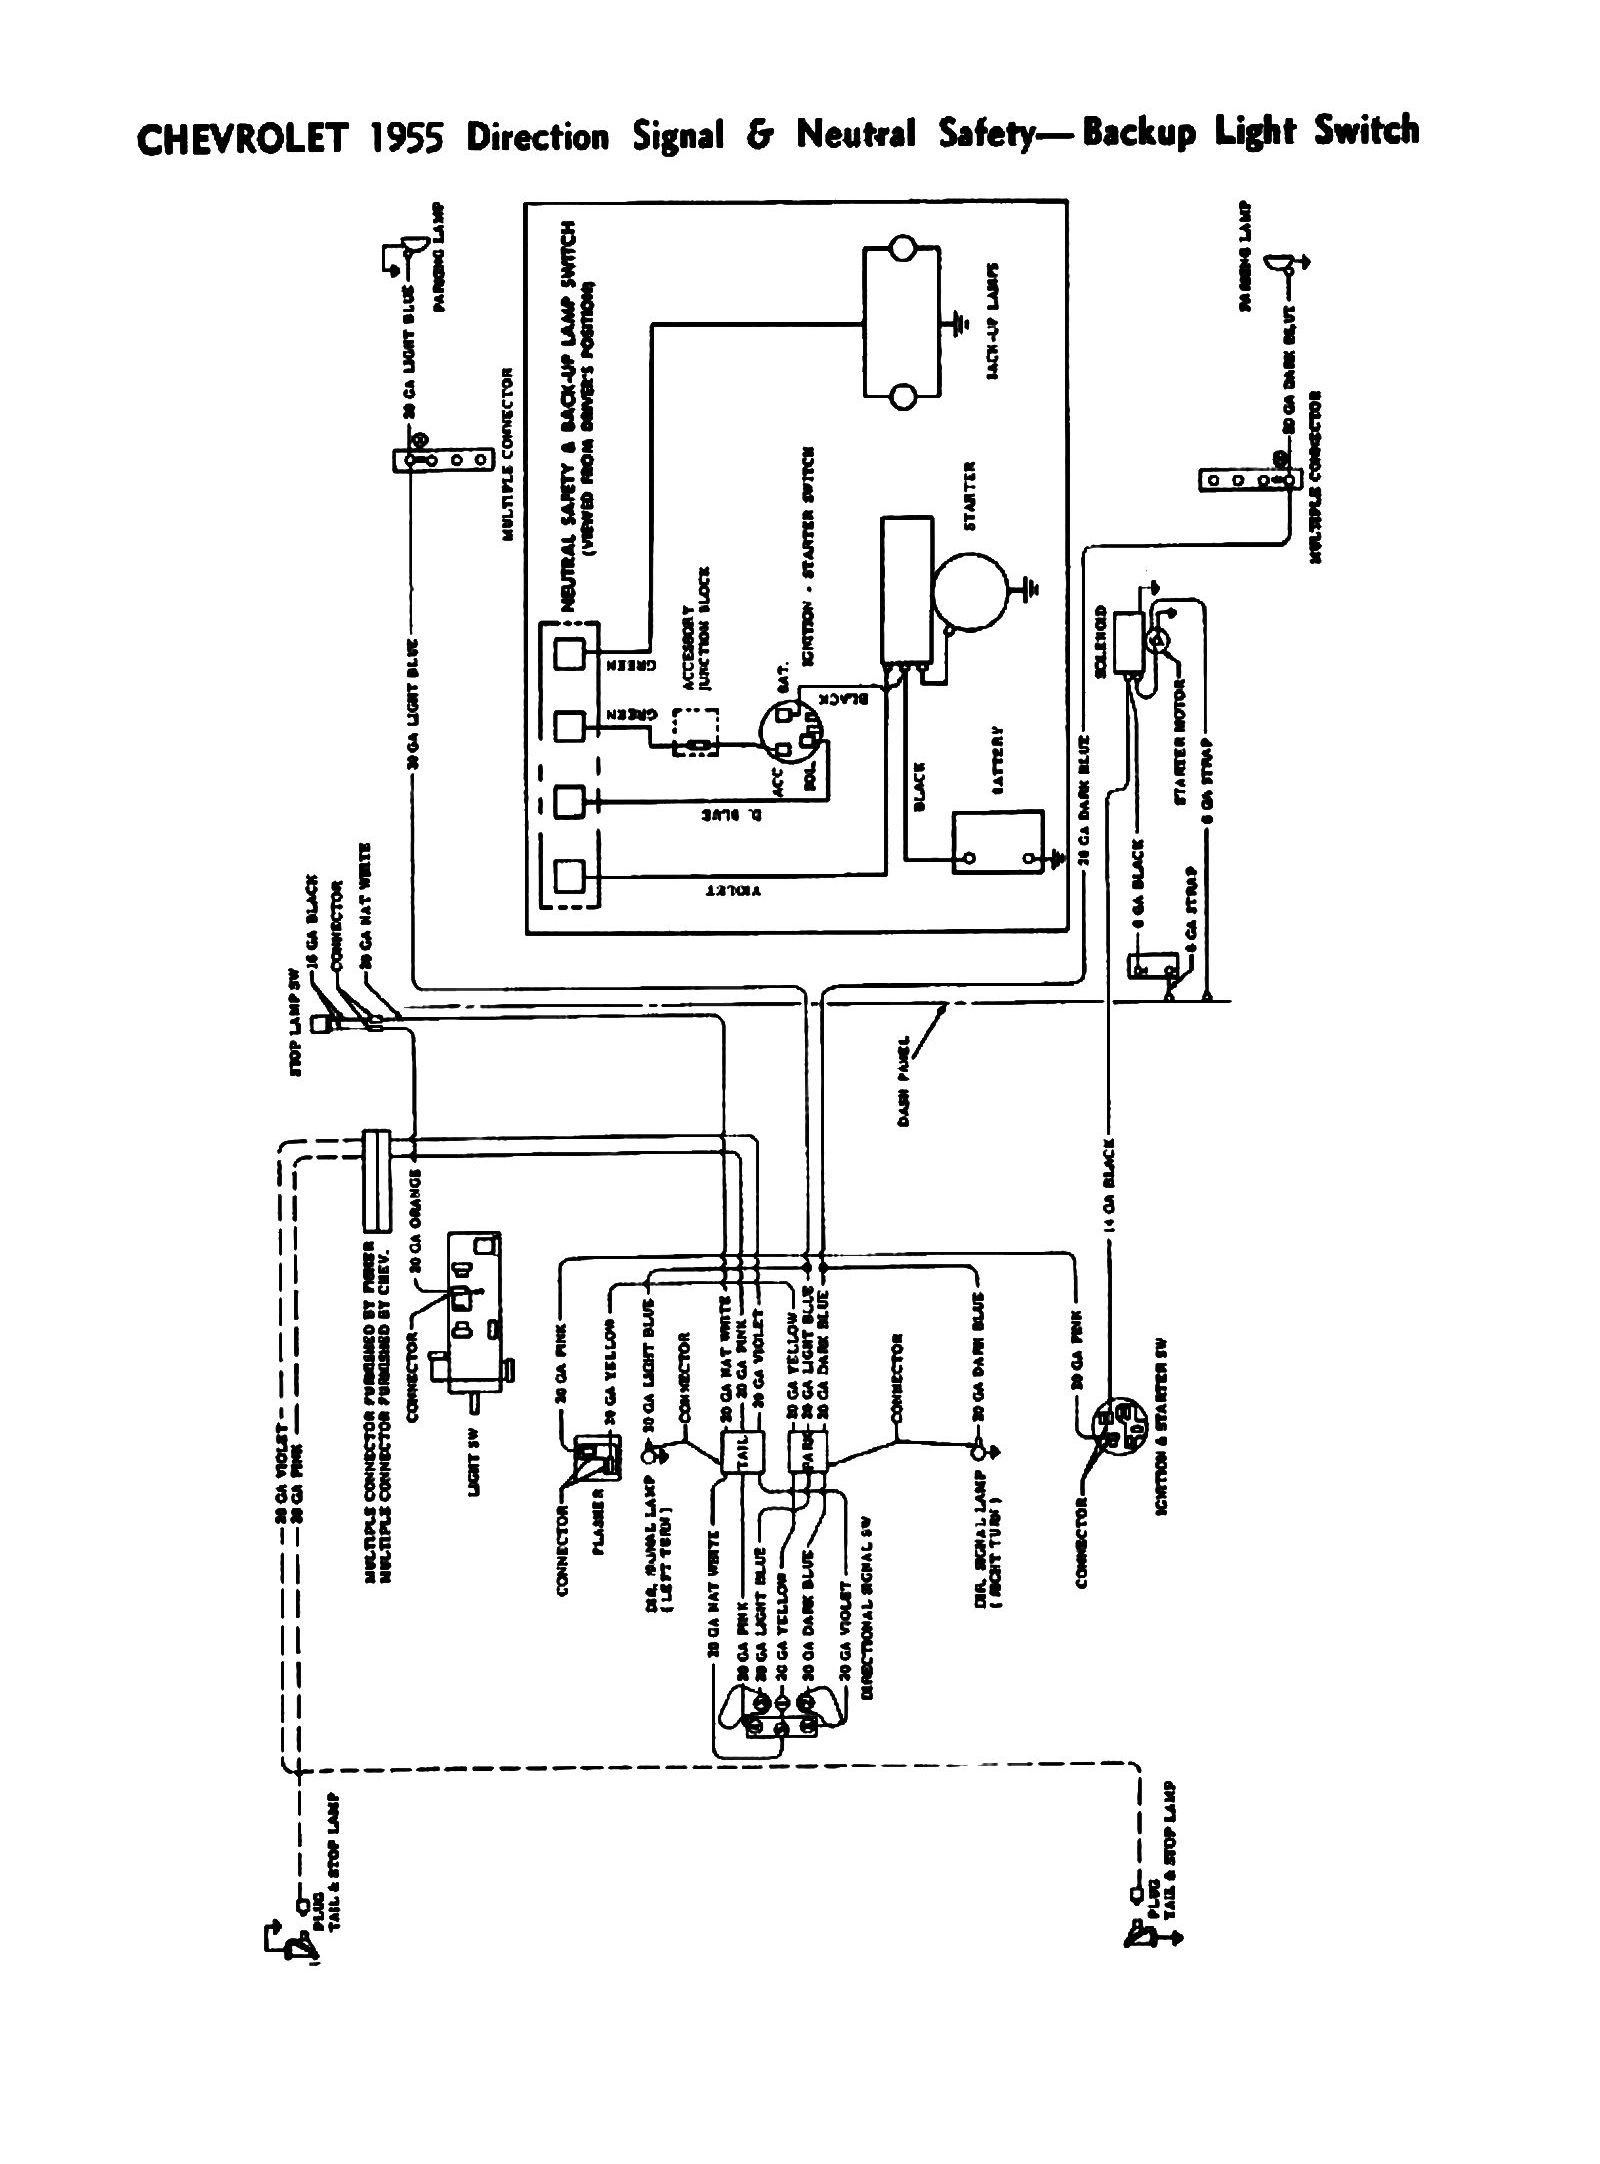 56 ford f100 wiring diagram